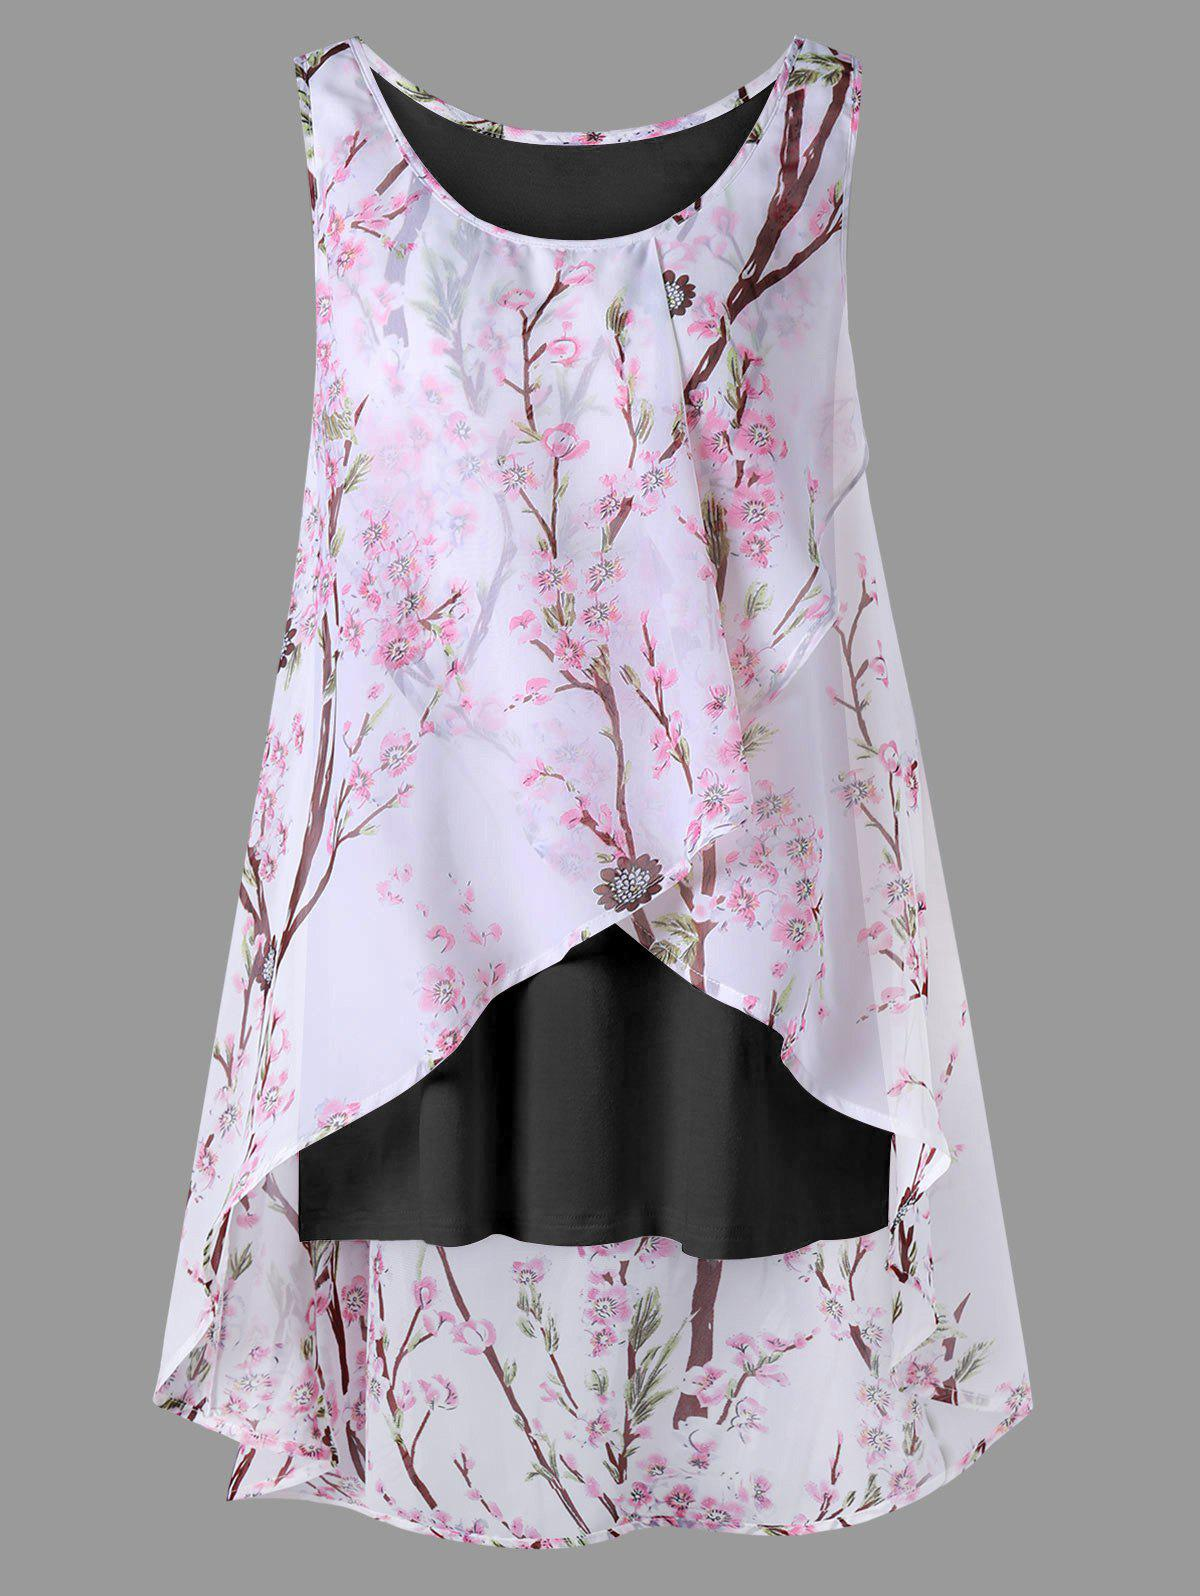 Plus Size Overlap Tiny Floral Sleeveless TopWOMEN<br><br>Size: XL; Color: BLACK; Material: Polyester; Shirt Length: Long; Sleeve Length: Sleeveless; Collar: Scoop Neck; Style: Casual; Season: Summer; Pattern Type: Floral; Weight: 0.2700kg; Package Contents: 1 x Blouse;